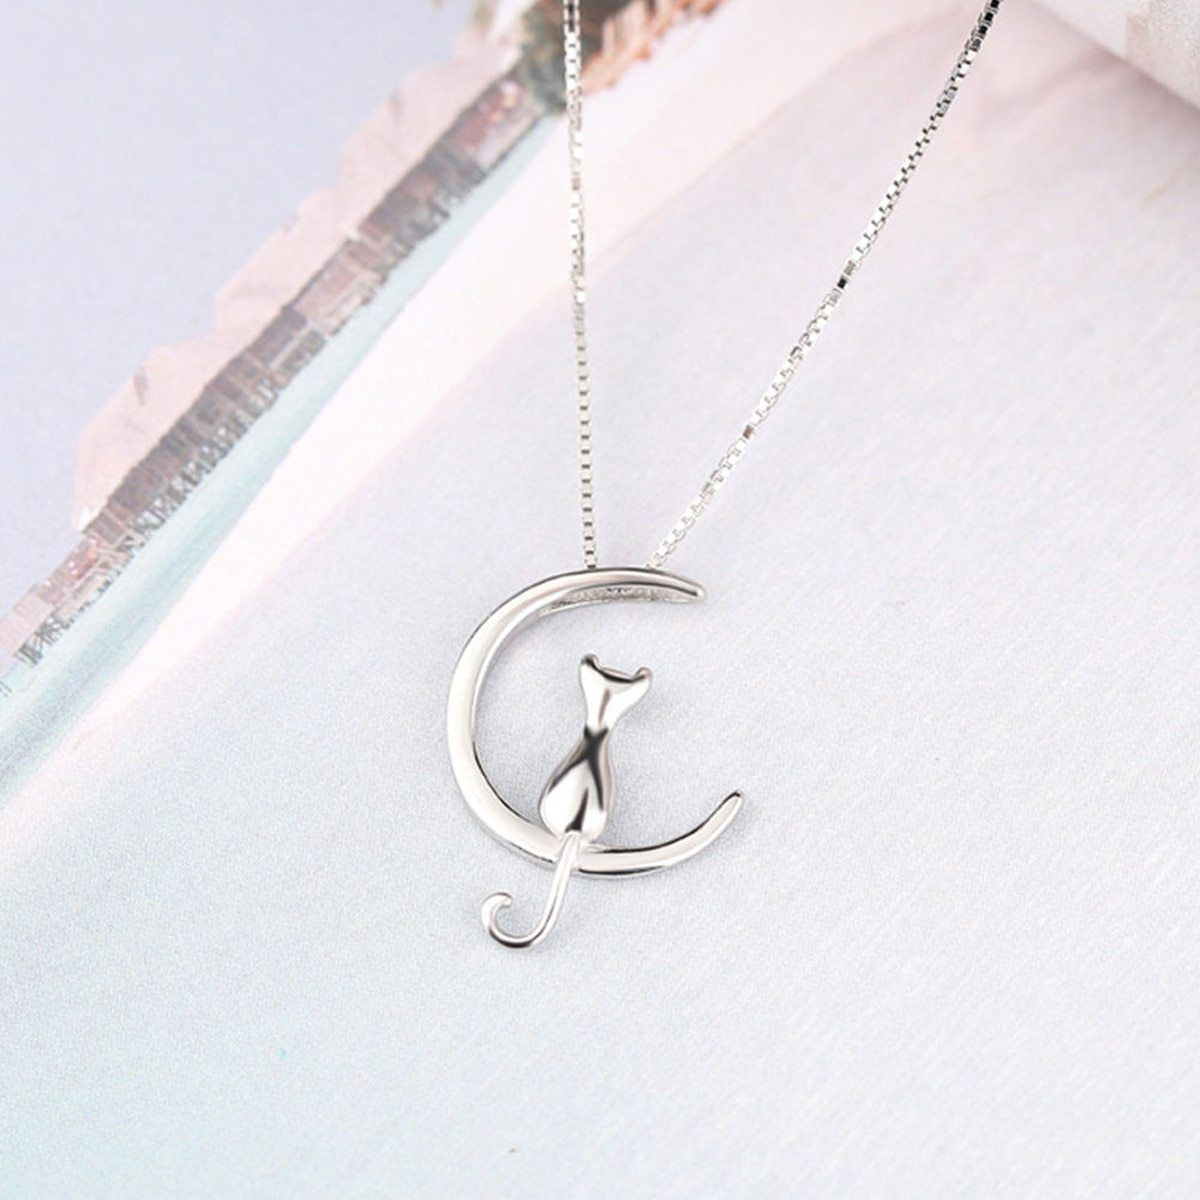 The Oh So Silly Pondering Cat Sitting on the Moon Pendant Necklace Pendant Necklaces MYI Bijoux Store